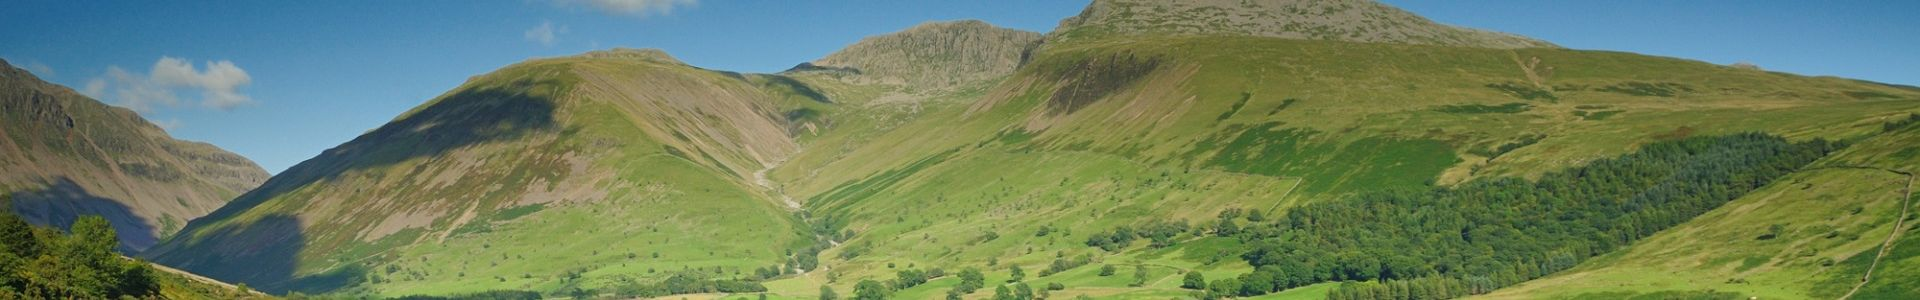 Map Of Uk Hills And Mountains.Lake District Mountain Weather Forecast Met Office